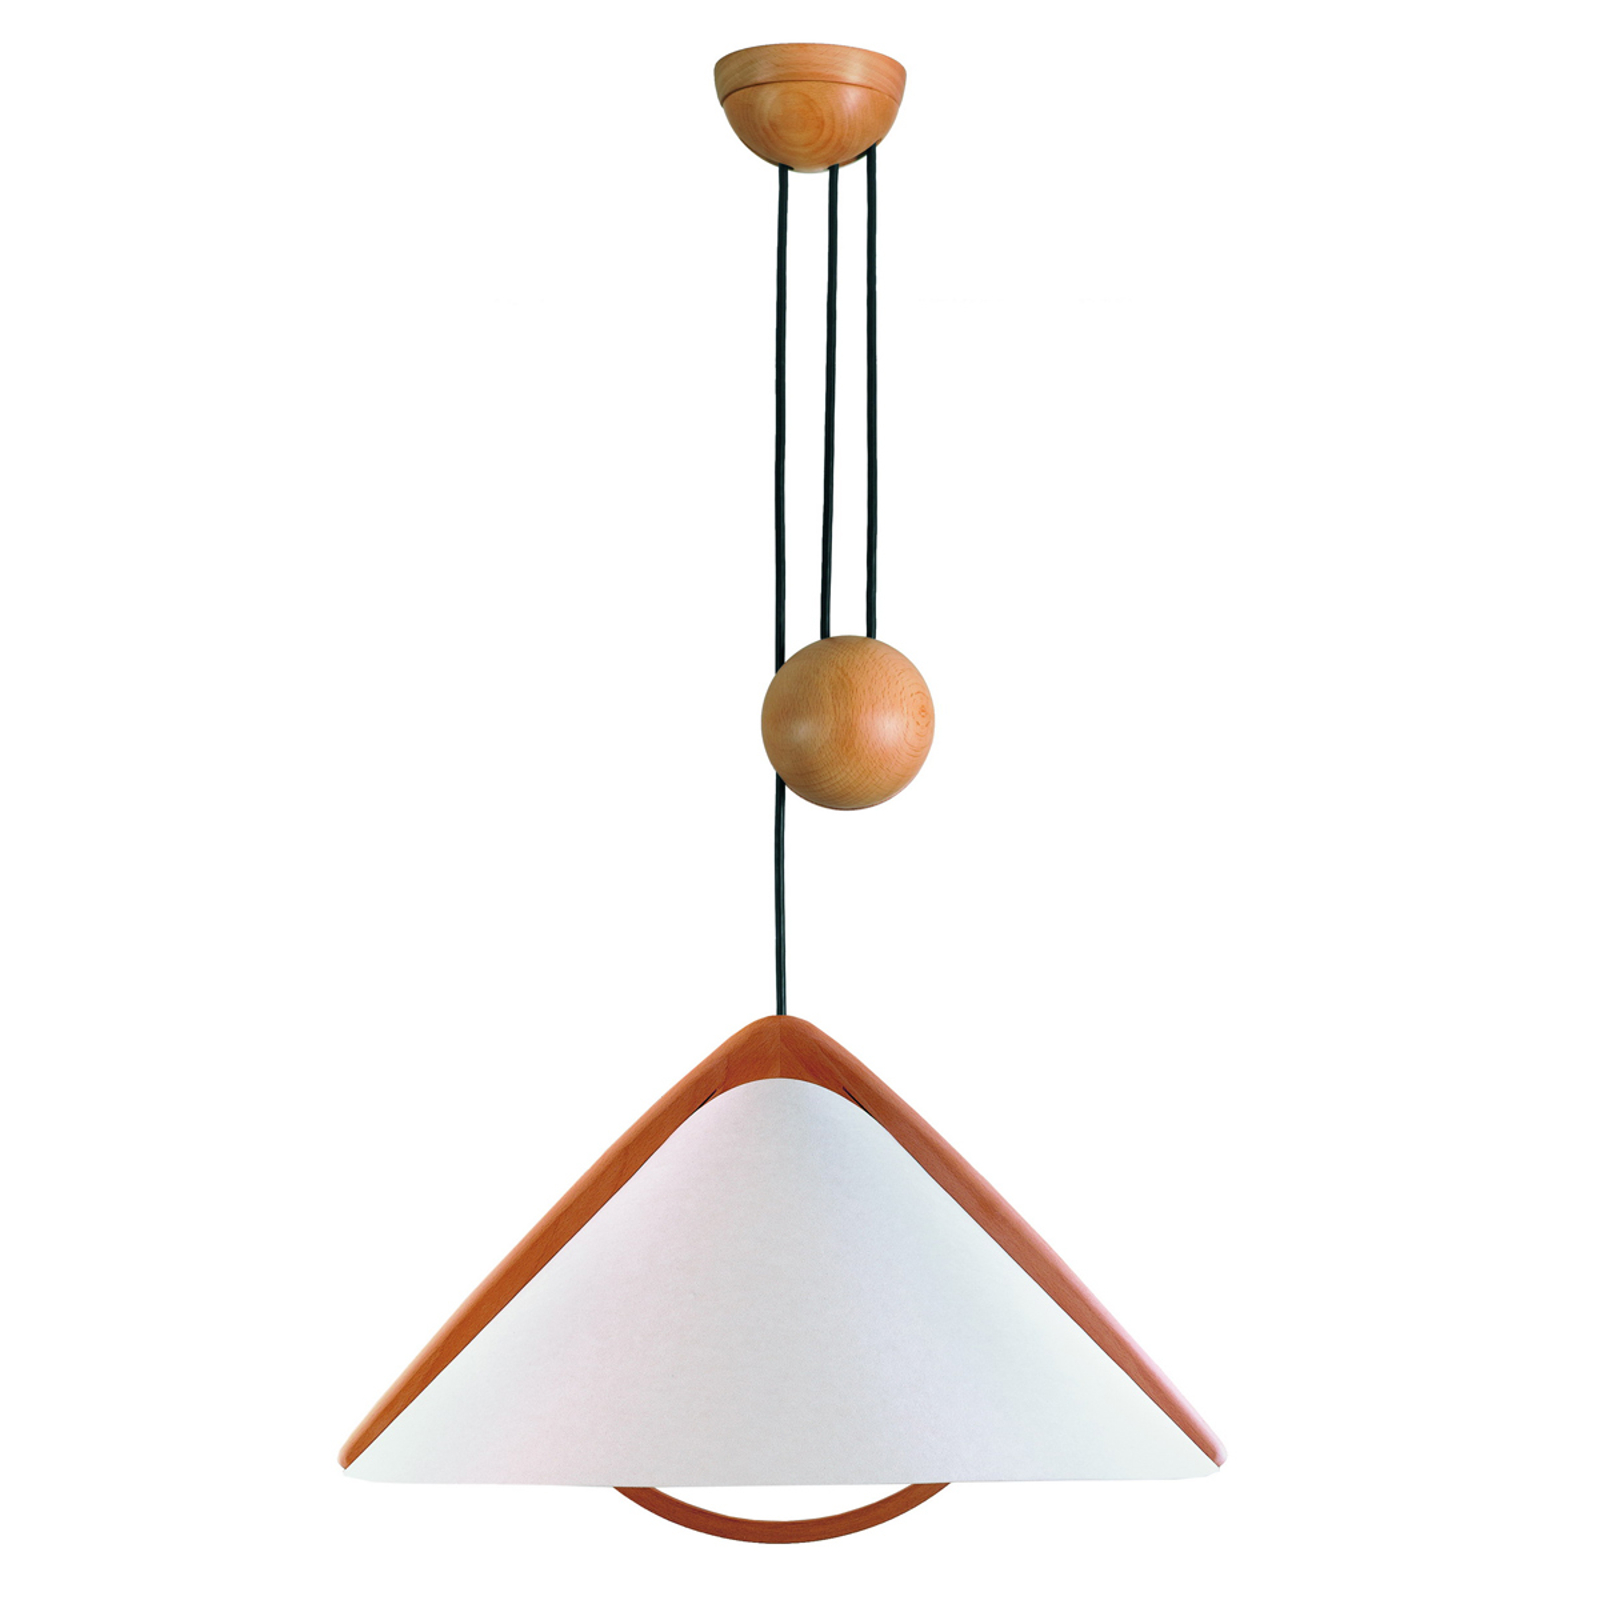 Rope pull light Pila with lunopal lampshade_2600076_1